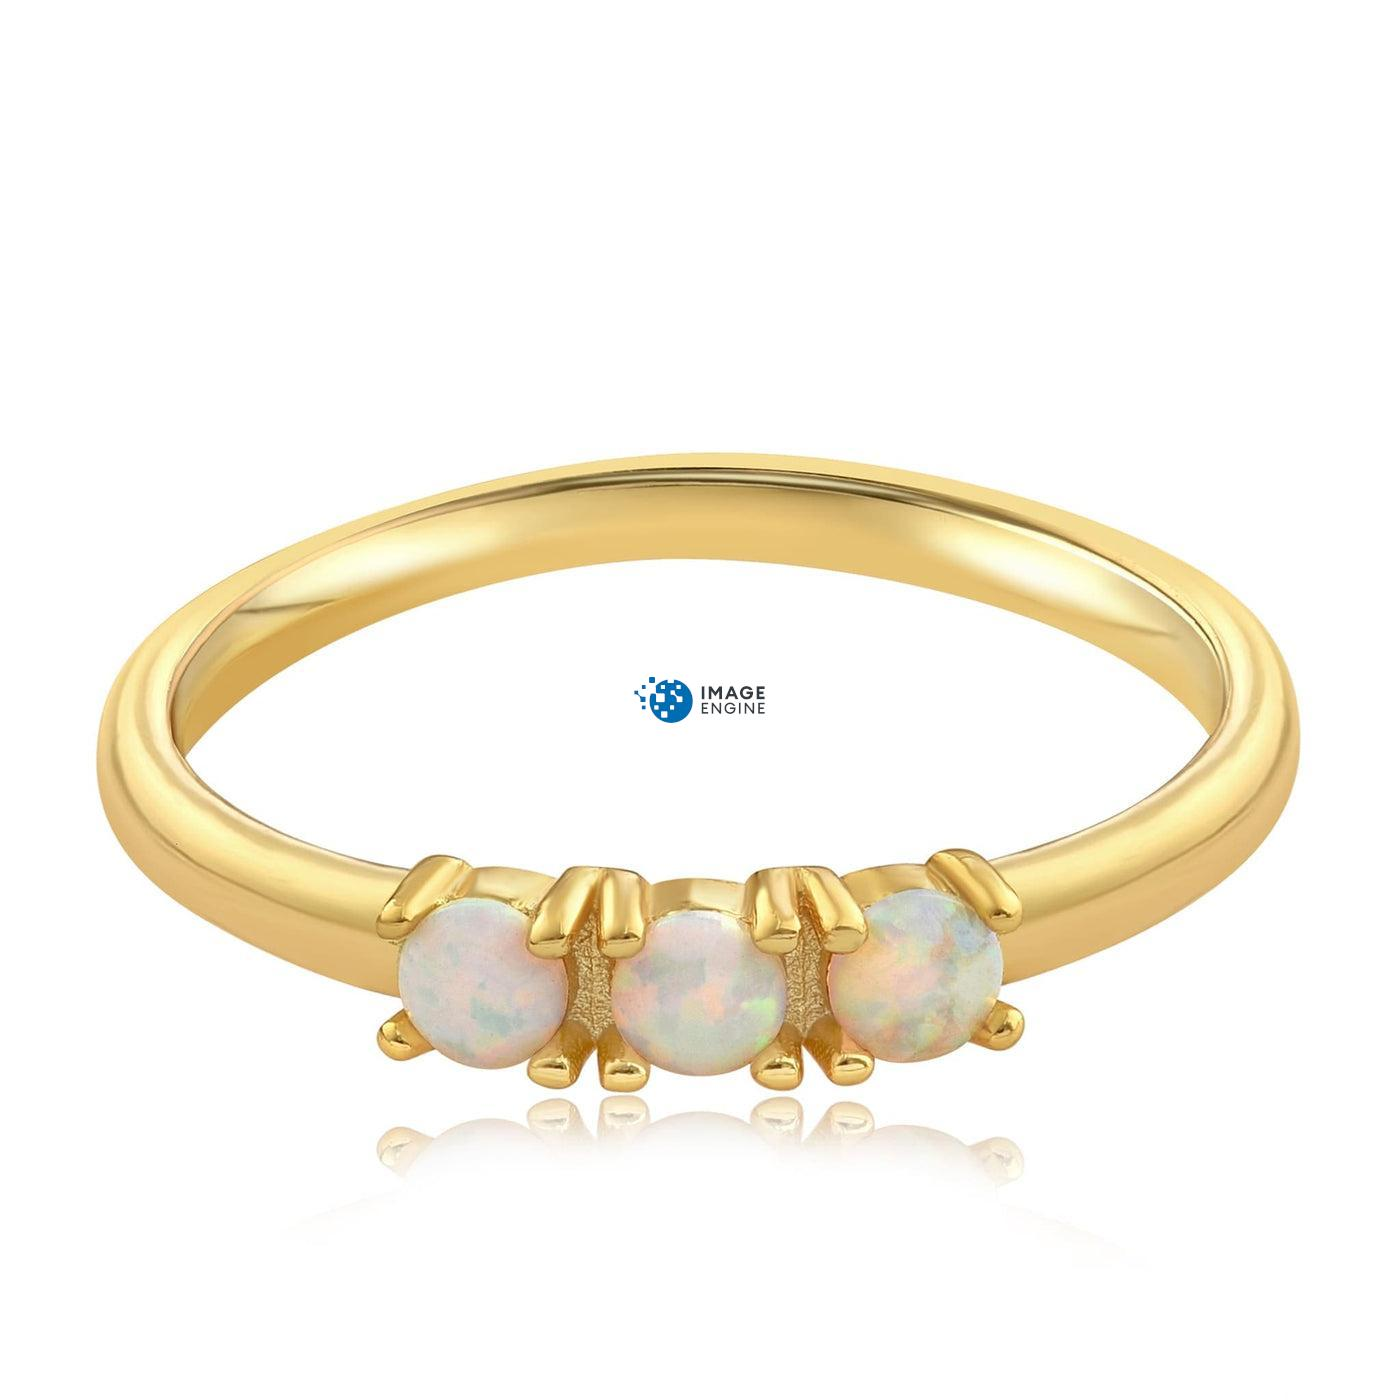 Simple Dots White Fire Opal Ring - Front View Facing Down - 18K Yellow Gold Vermeil